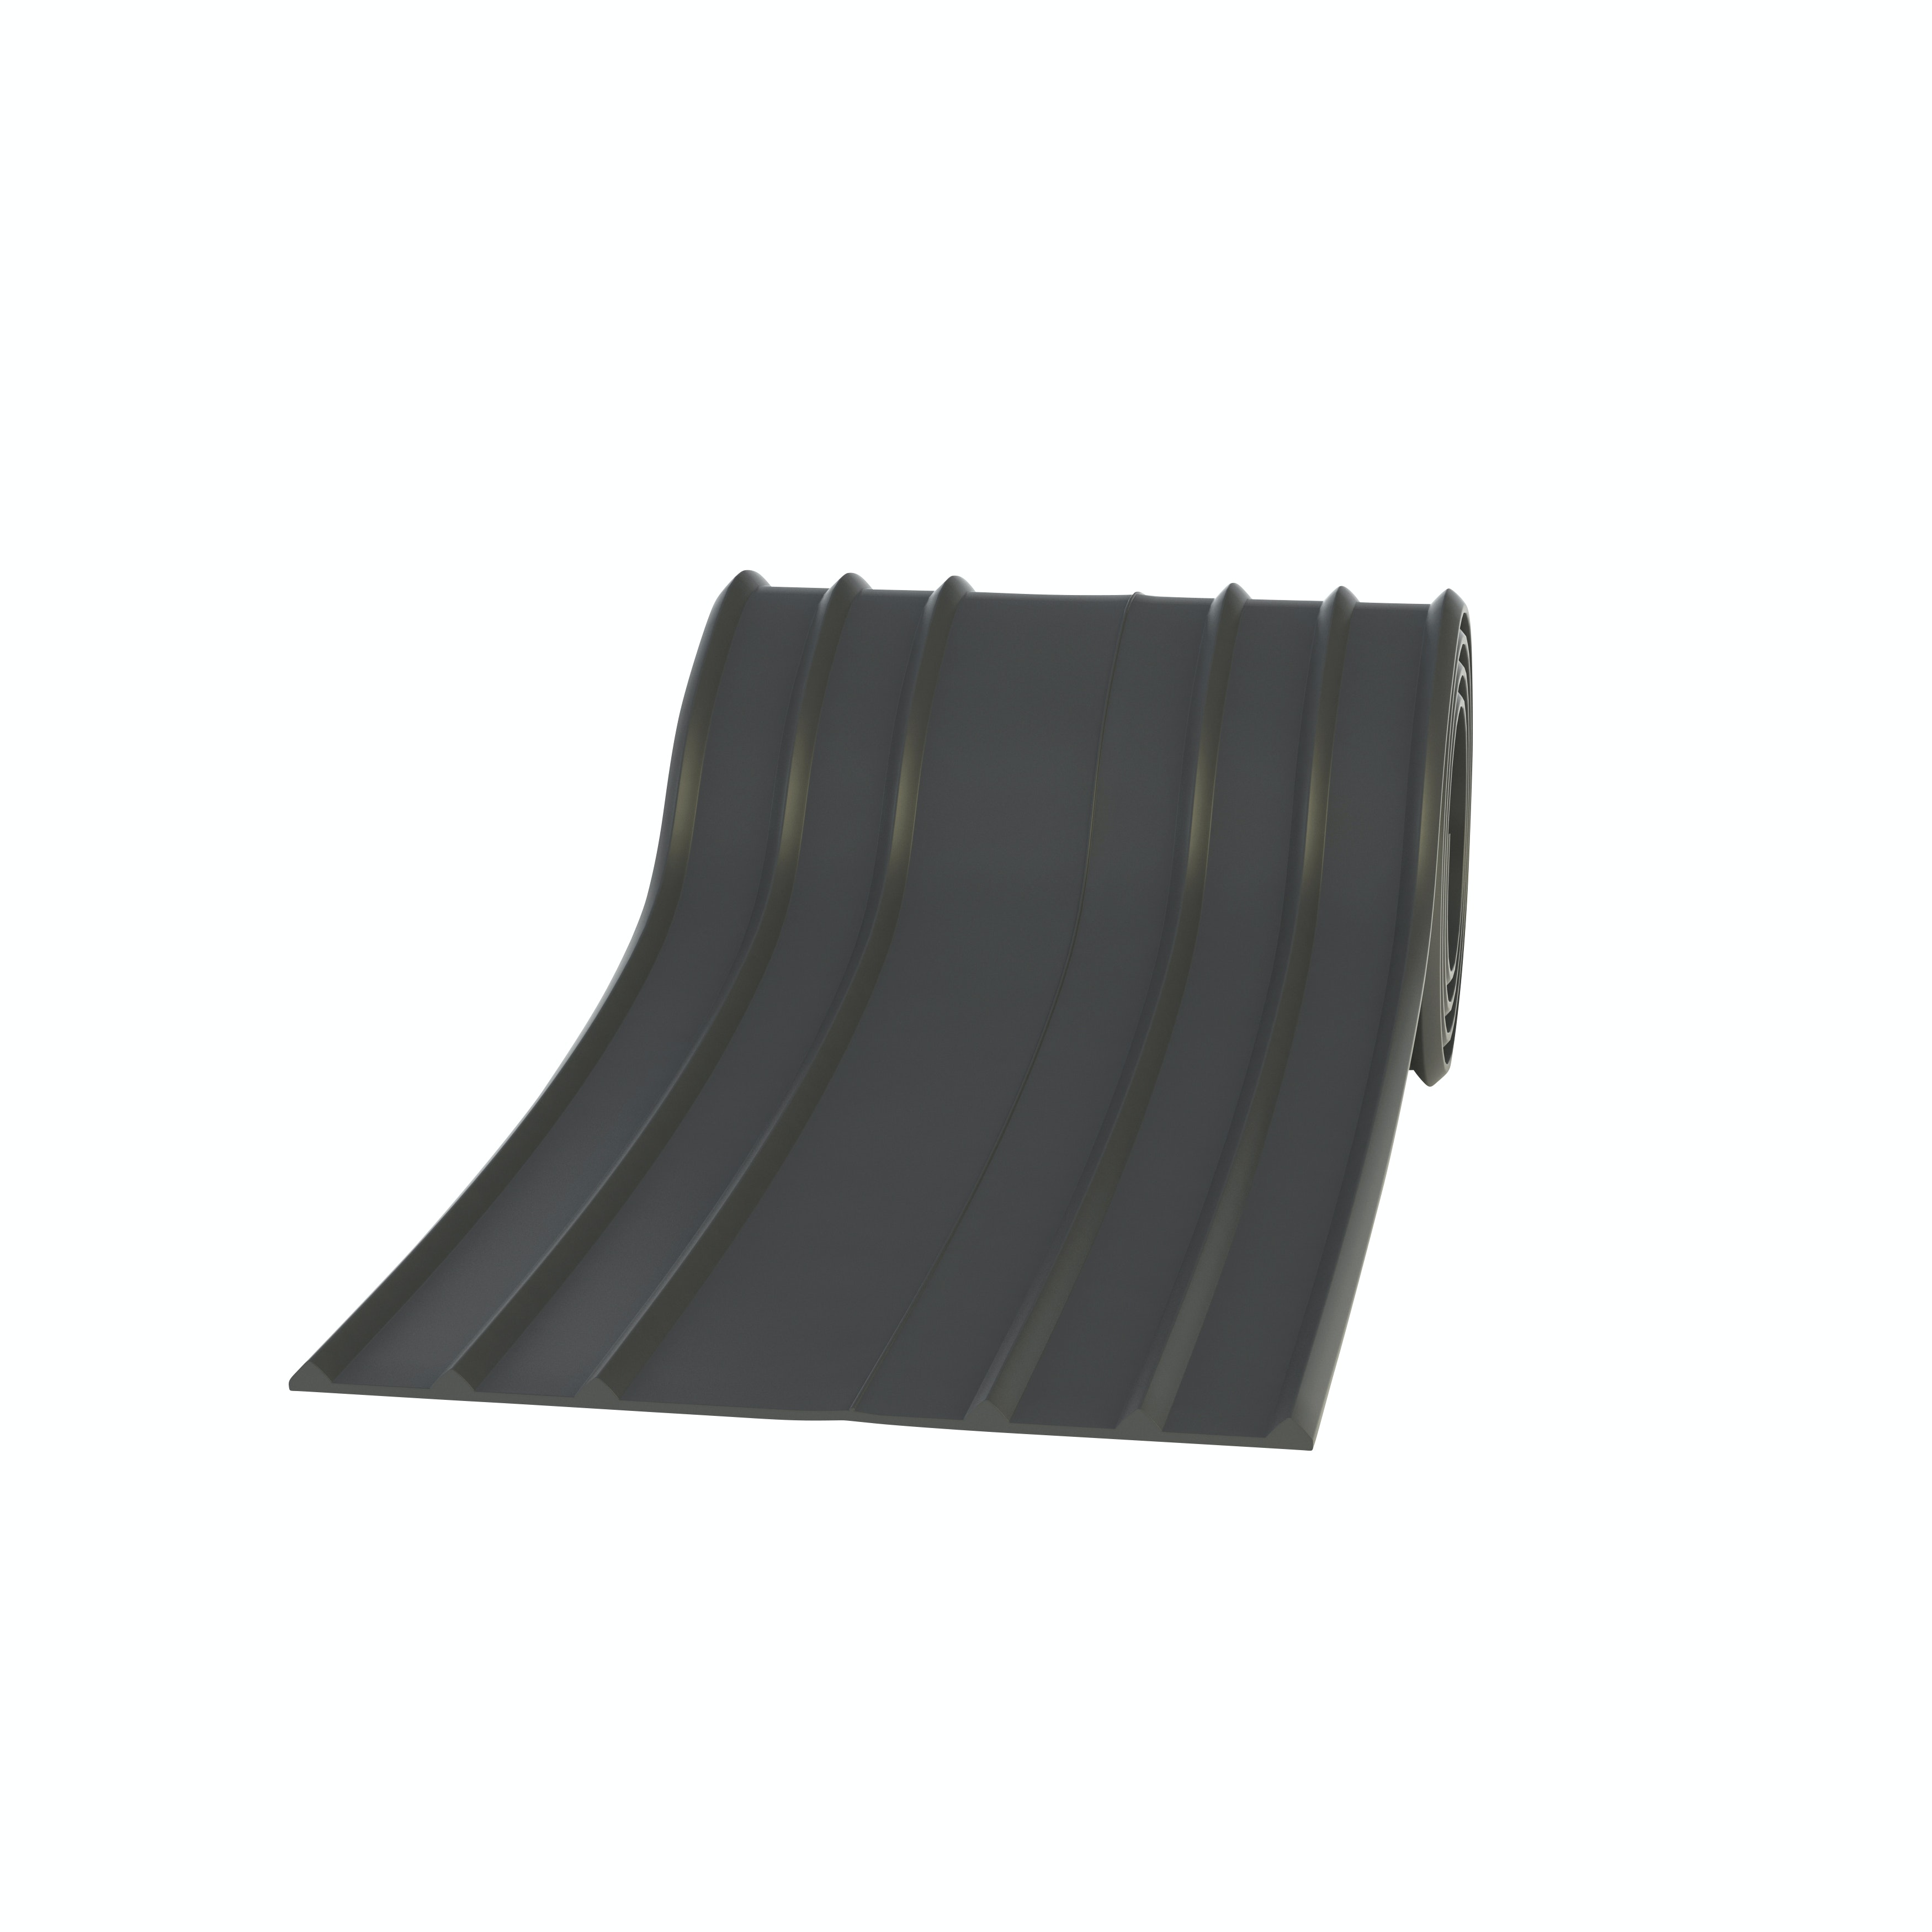 Gummiremsa Cembrit Epdm 90Mm